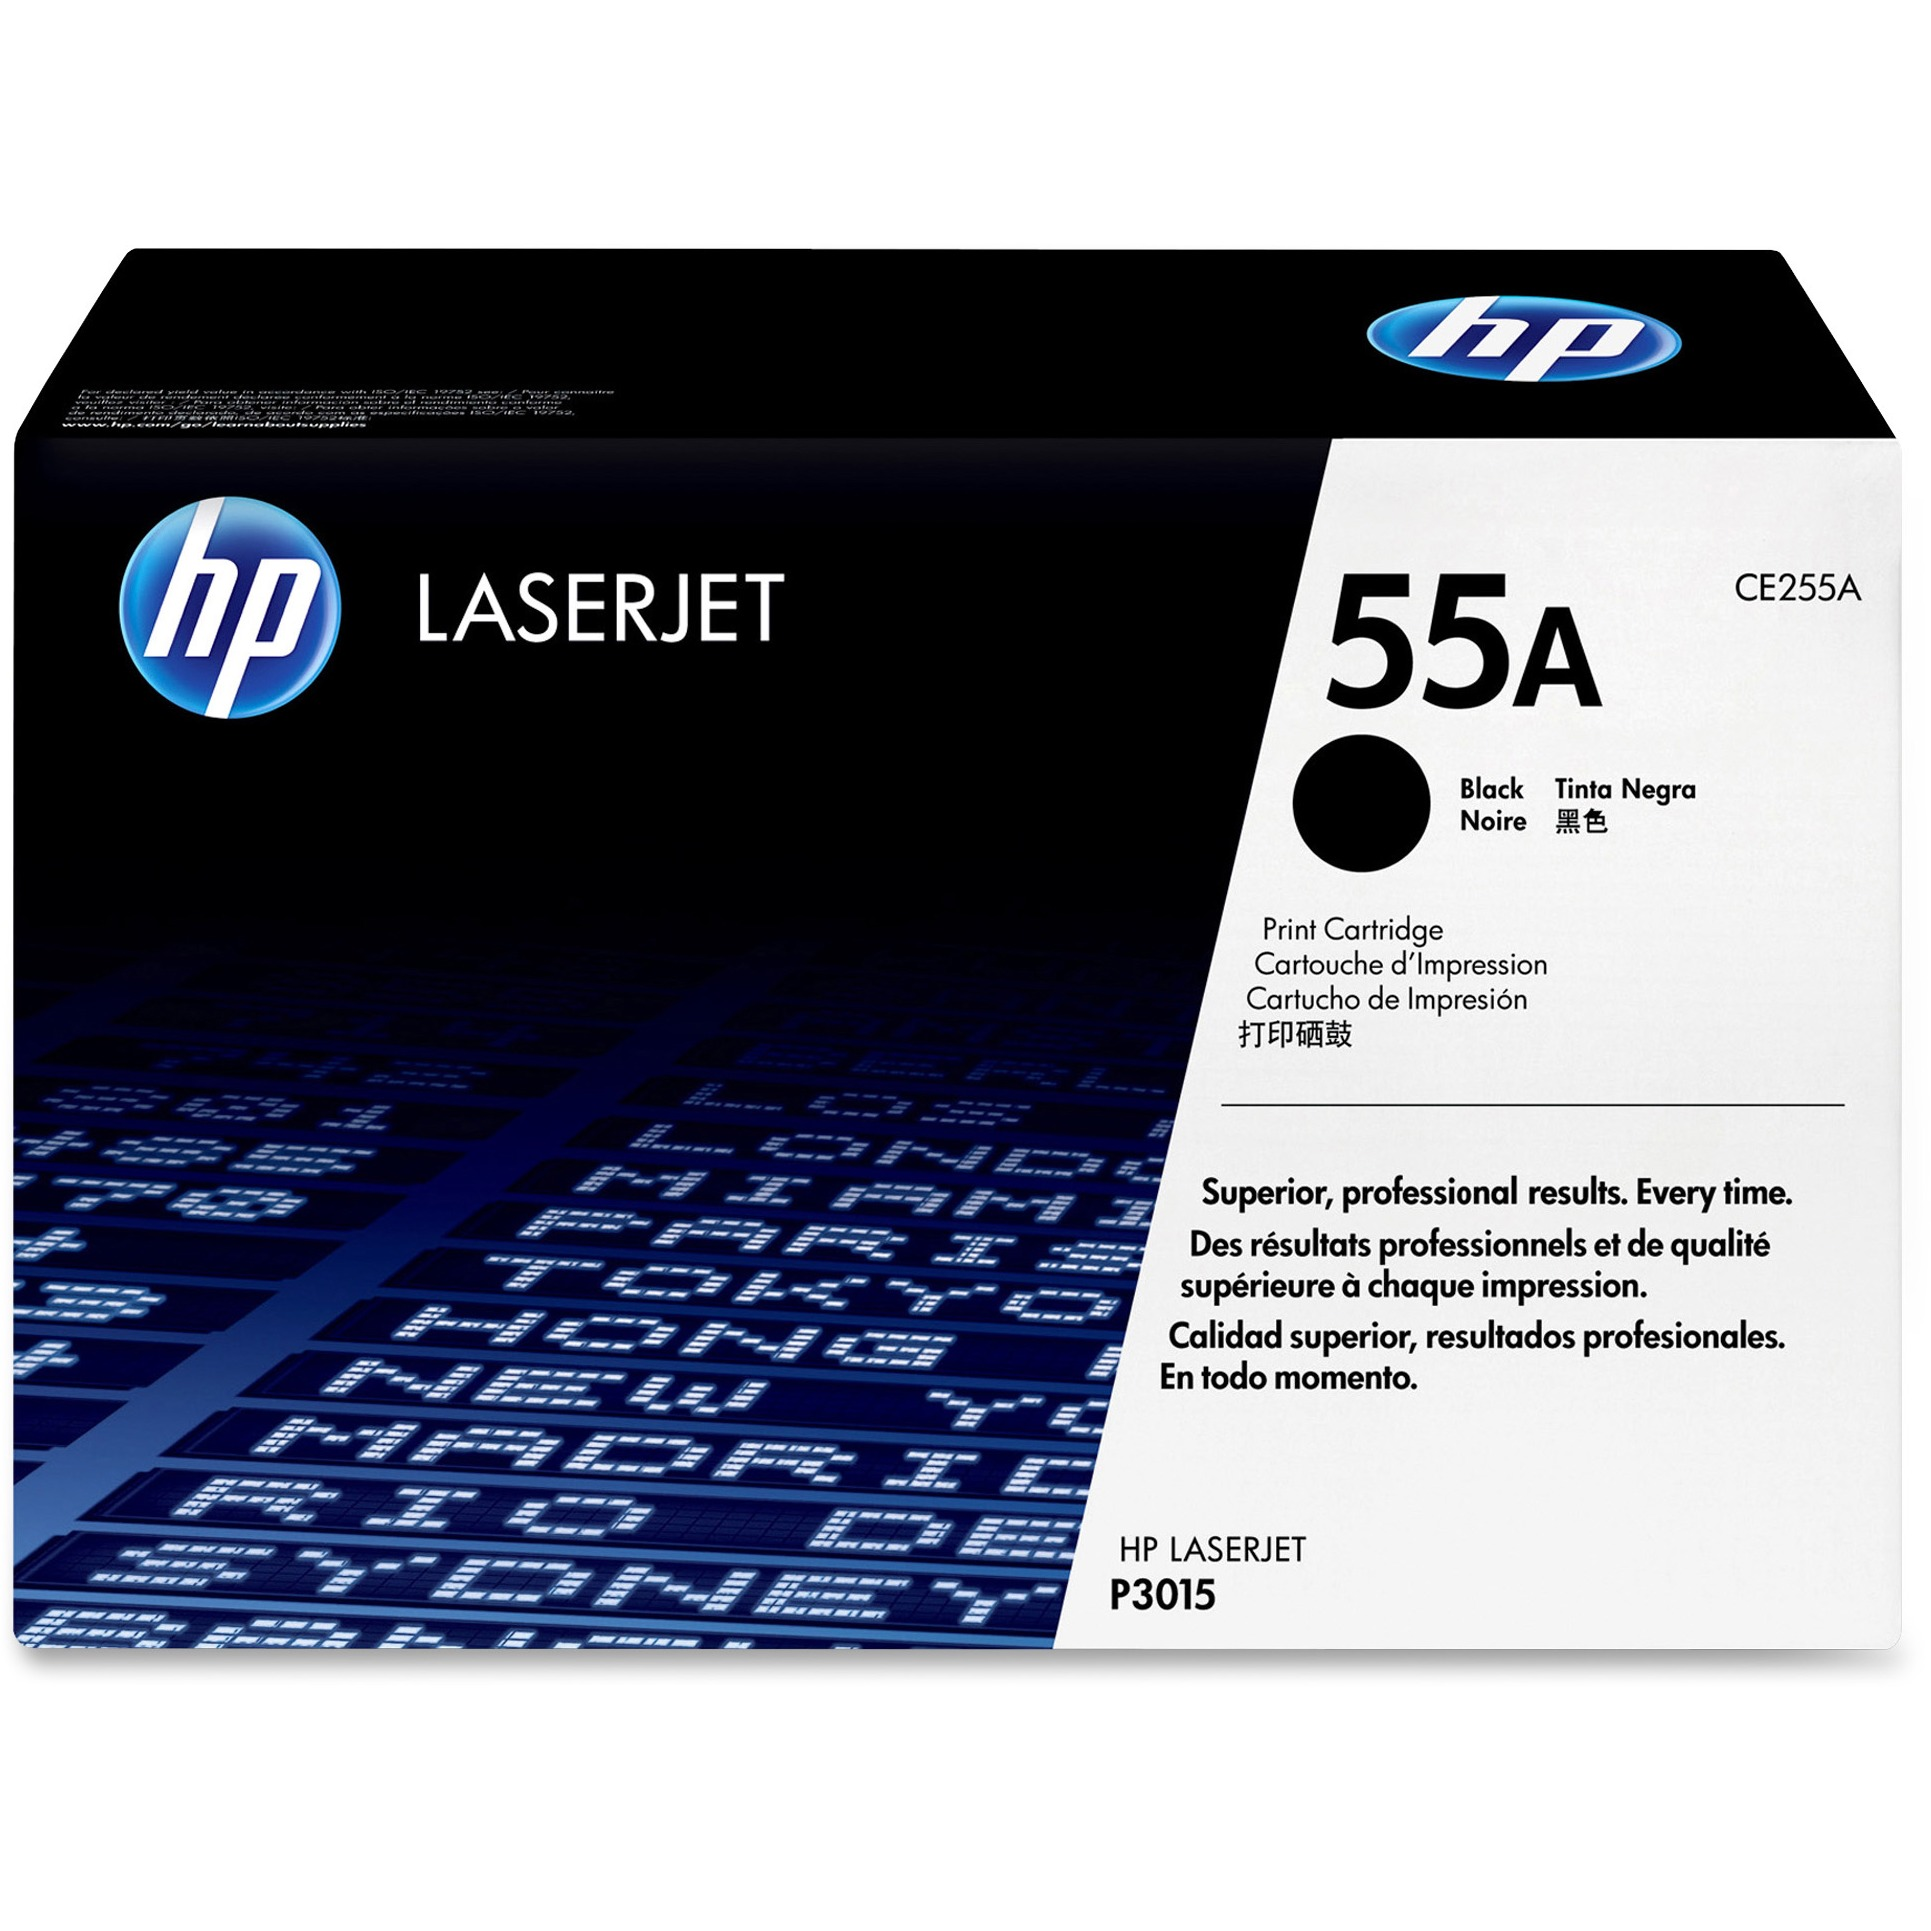 HP 55A Original Toner Cartridge - Single Pack, 1 Each (Quantity)